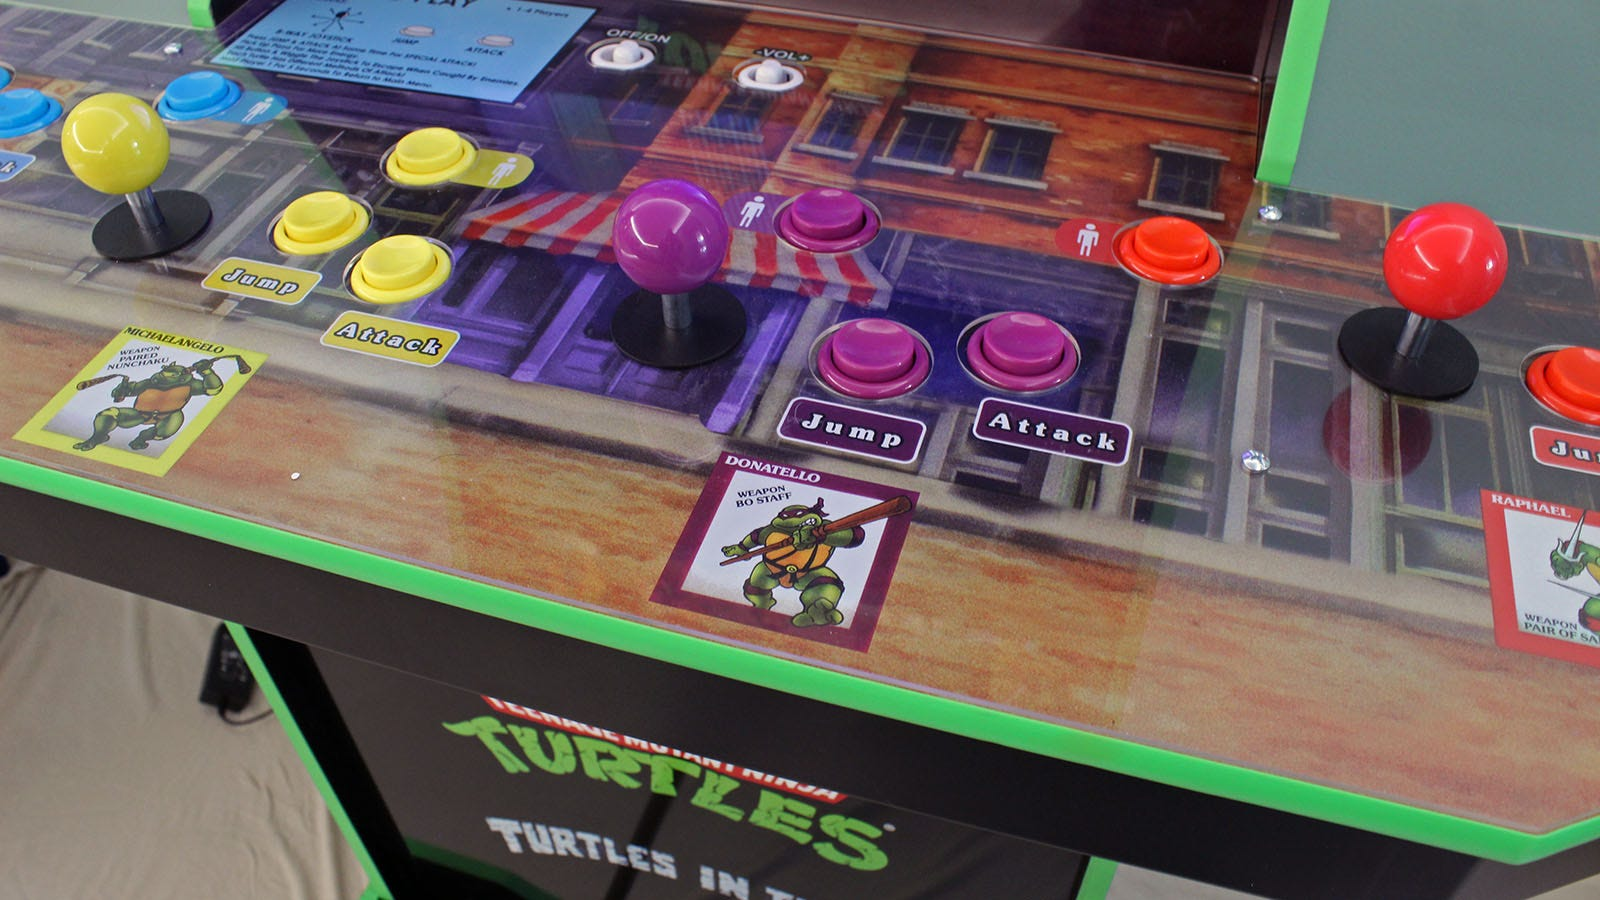 """The controller, buttons, and Michelangelo in a yellow mask and bands on the """"Teenage Mutant Ninja Turtles"""" arcade."""